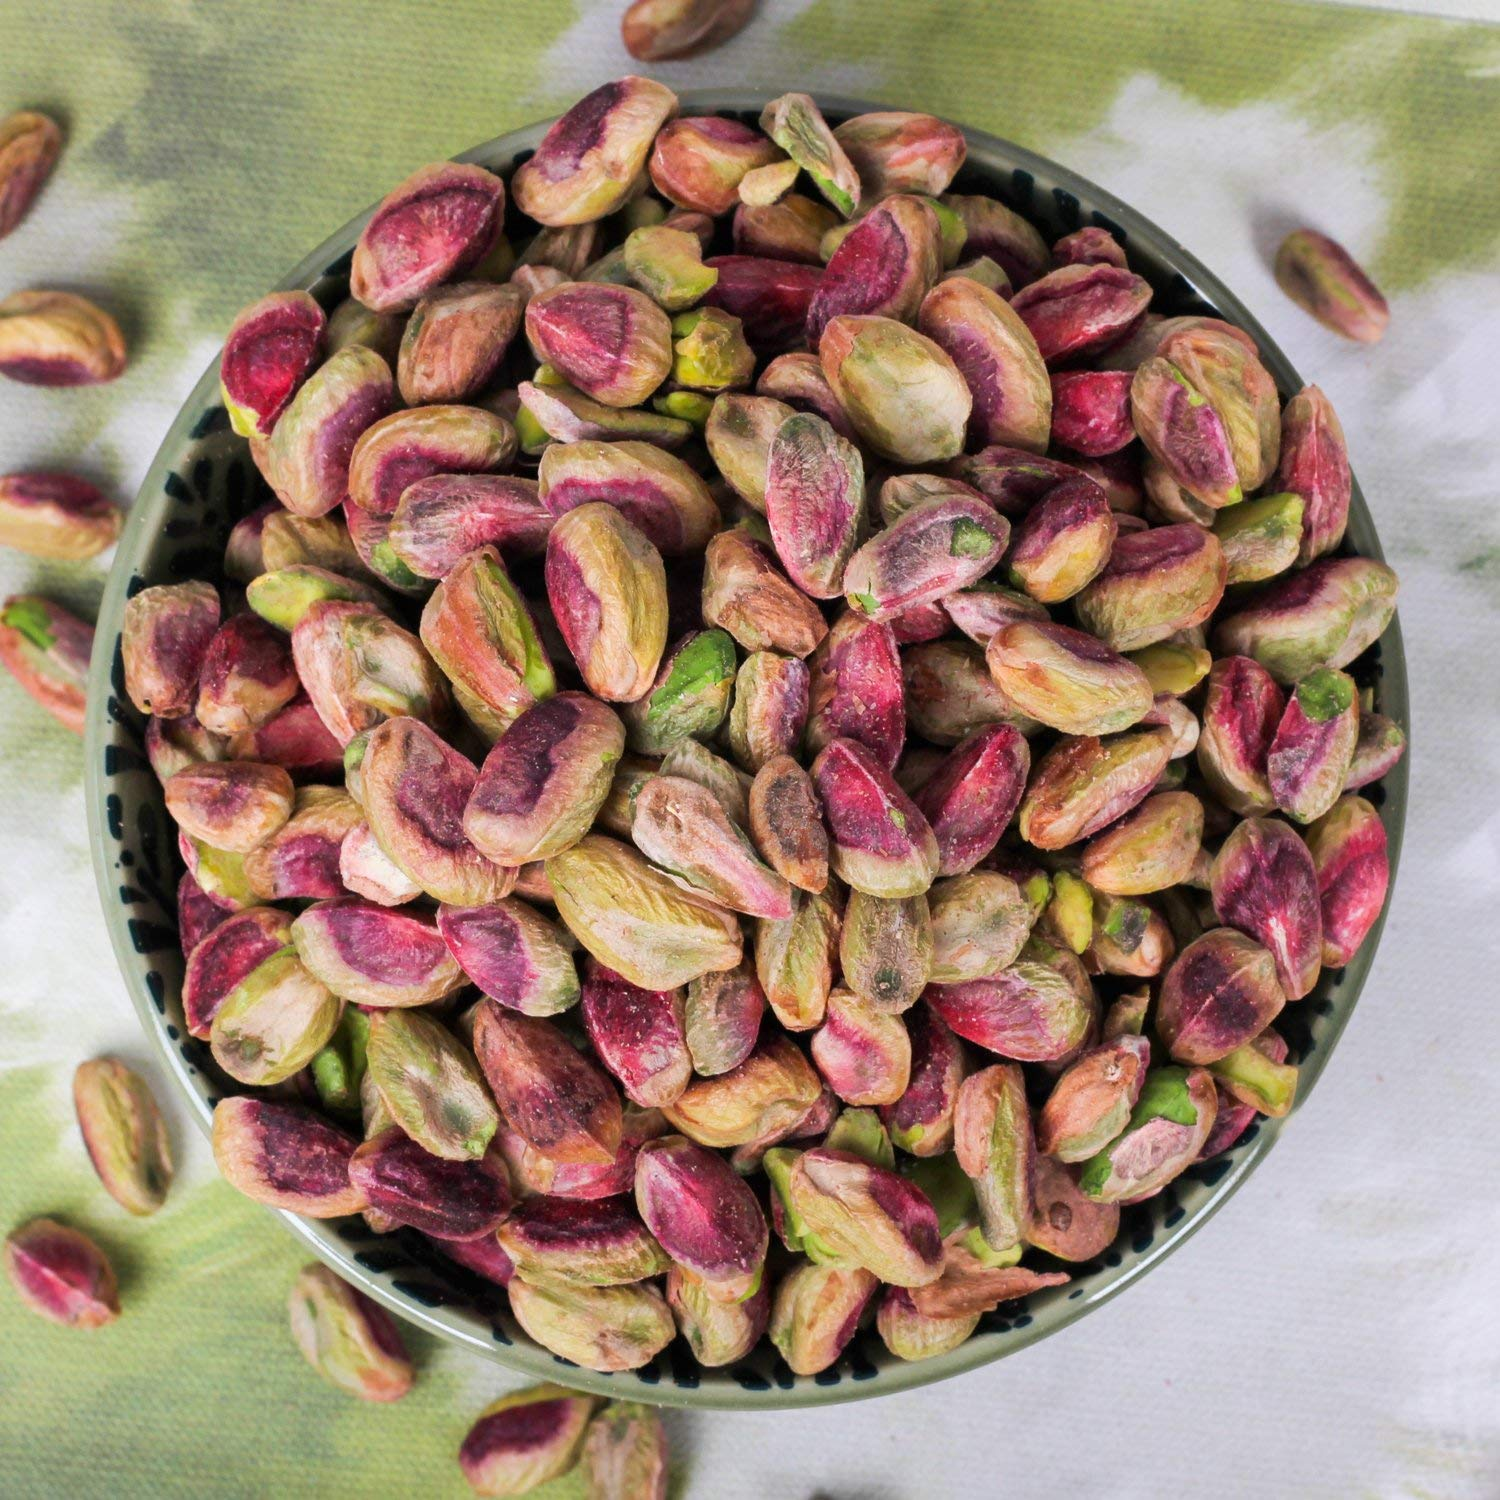 NatureVit Pistachios Kernels Without Shell, 200gm